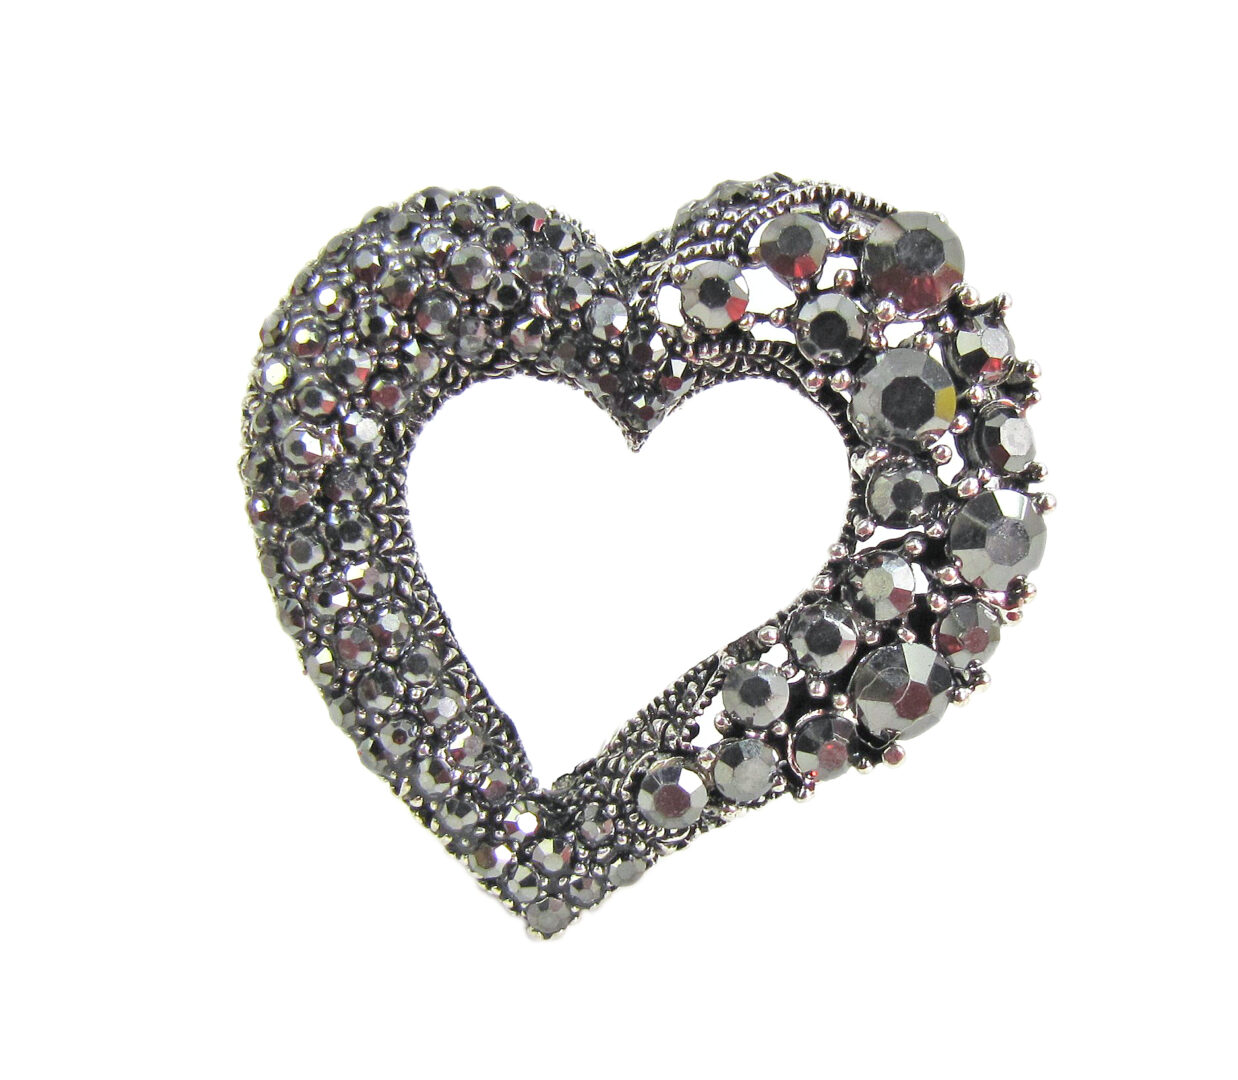 heart-shaped jewelry with black crystals